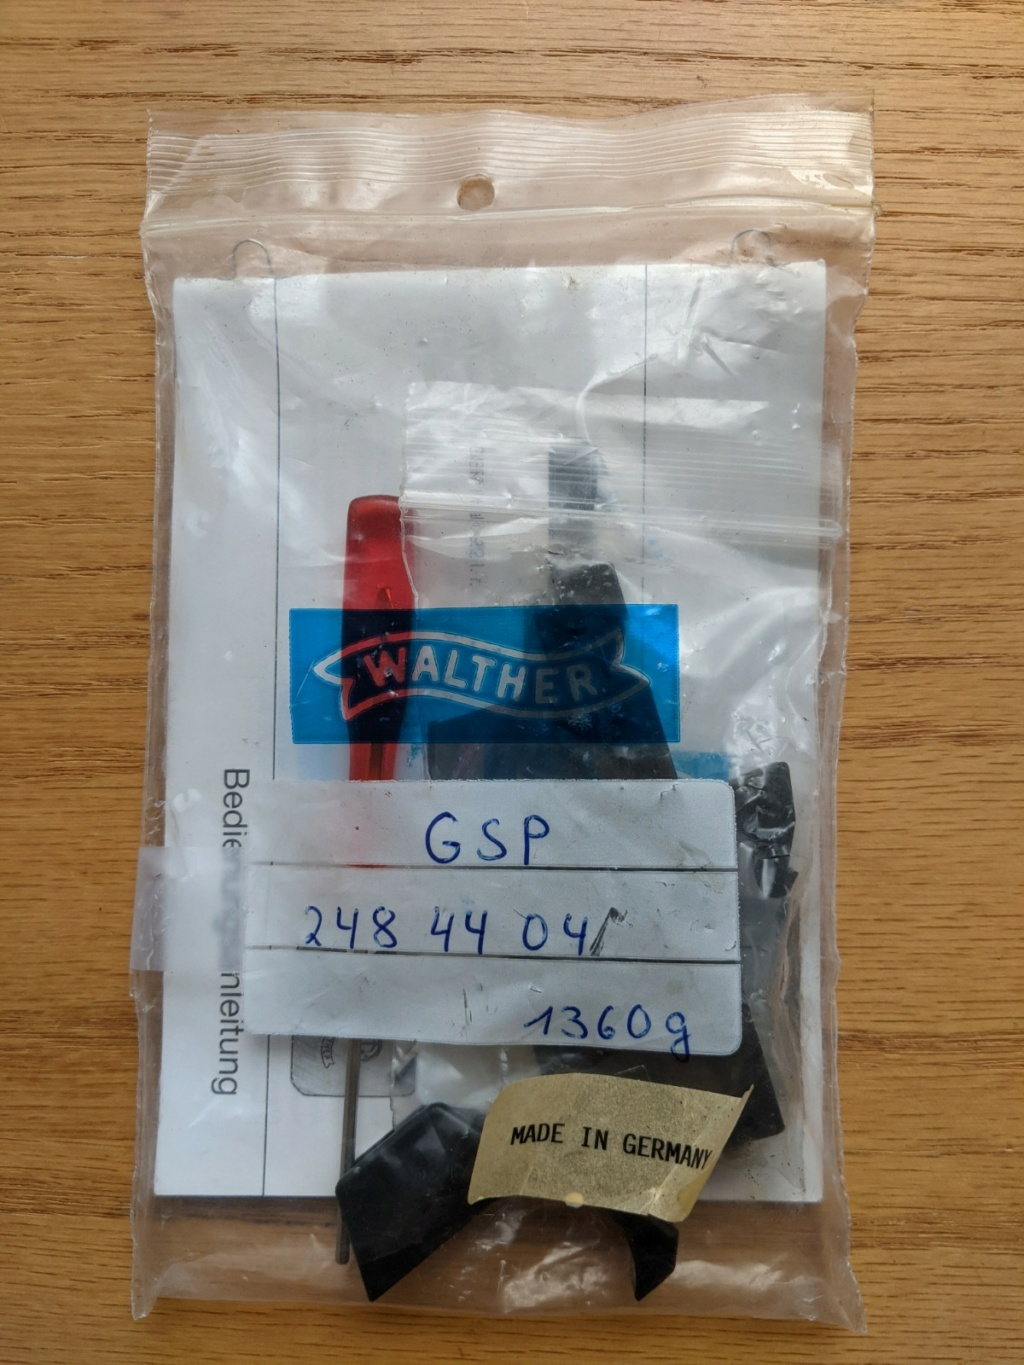 SOLD: Walther GSP two stage trigger assembly – 1360g – Walther part number: 248 44 04. Price drop to $200 Pxl_2014